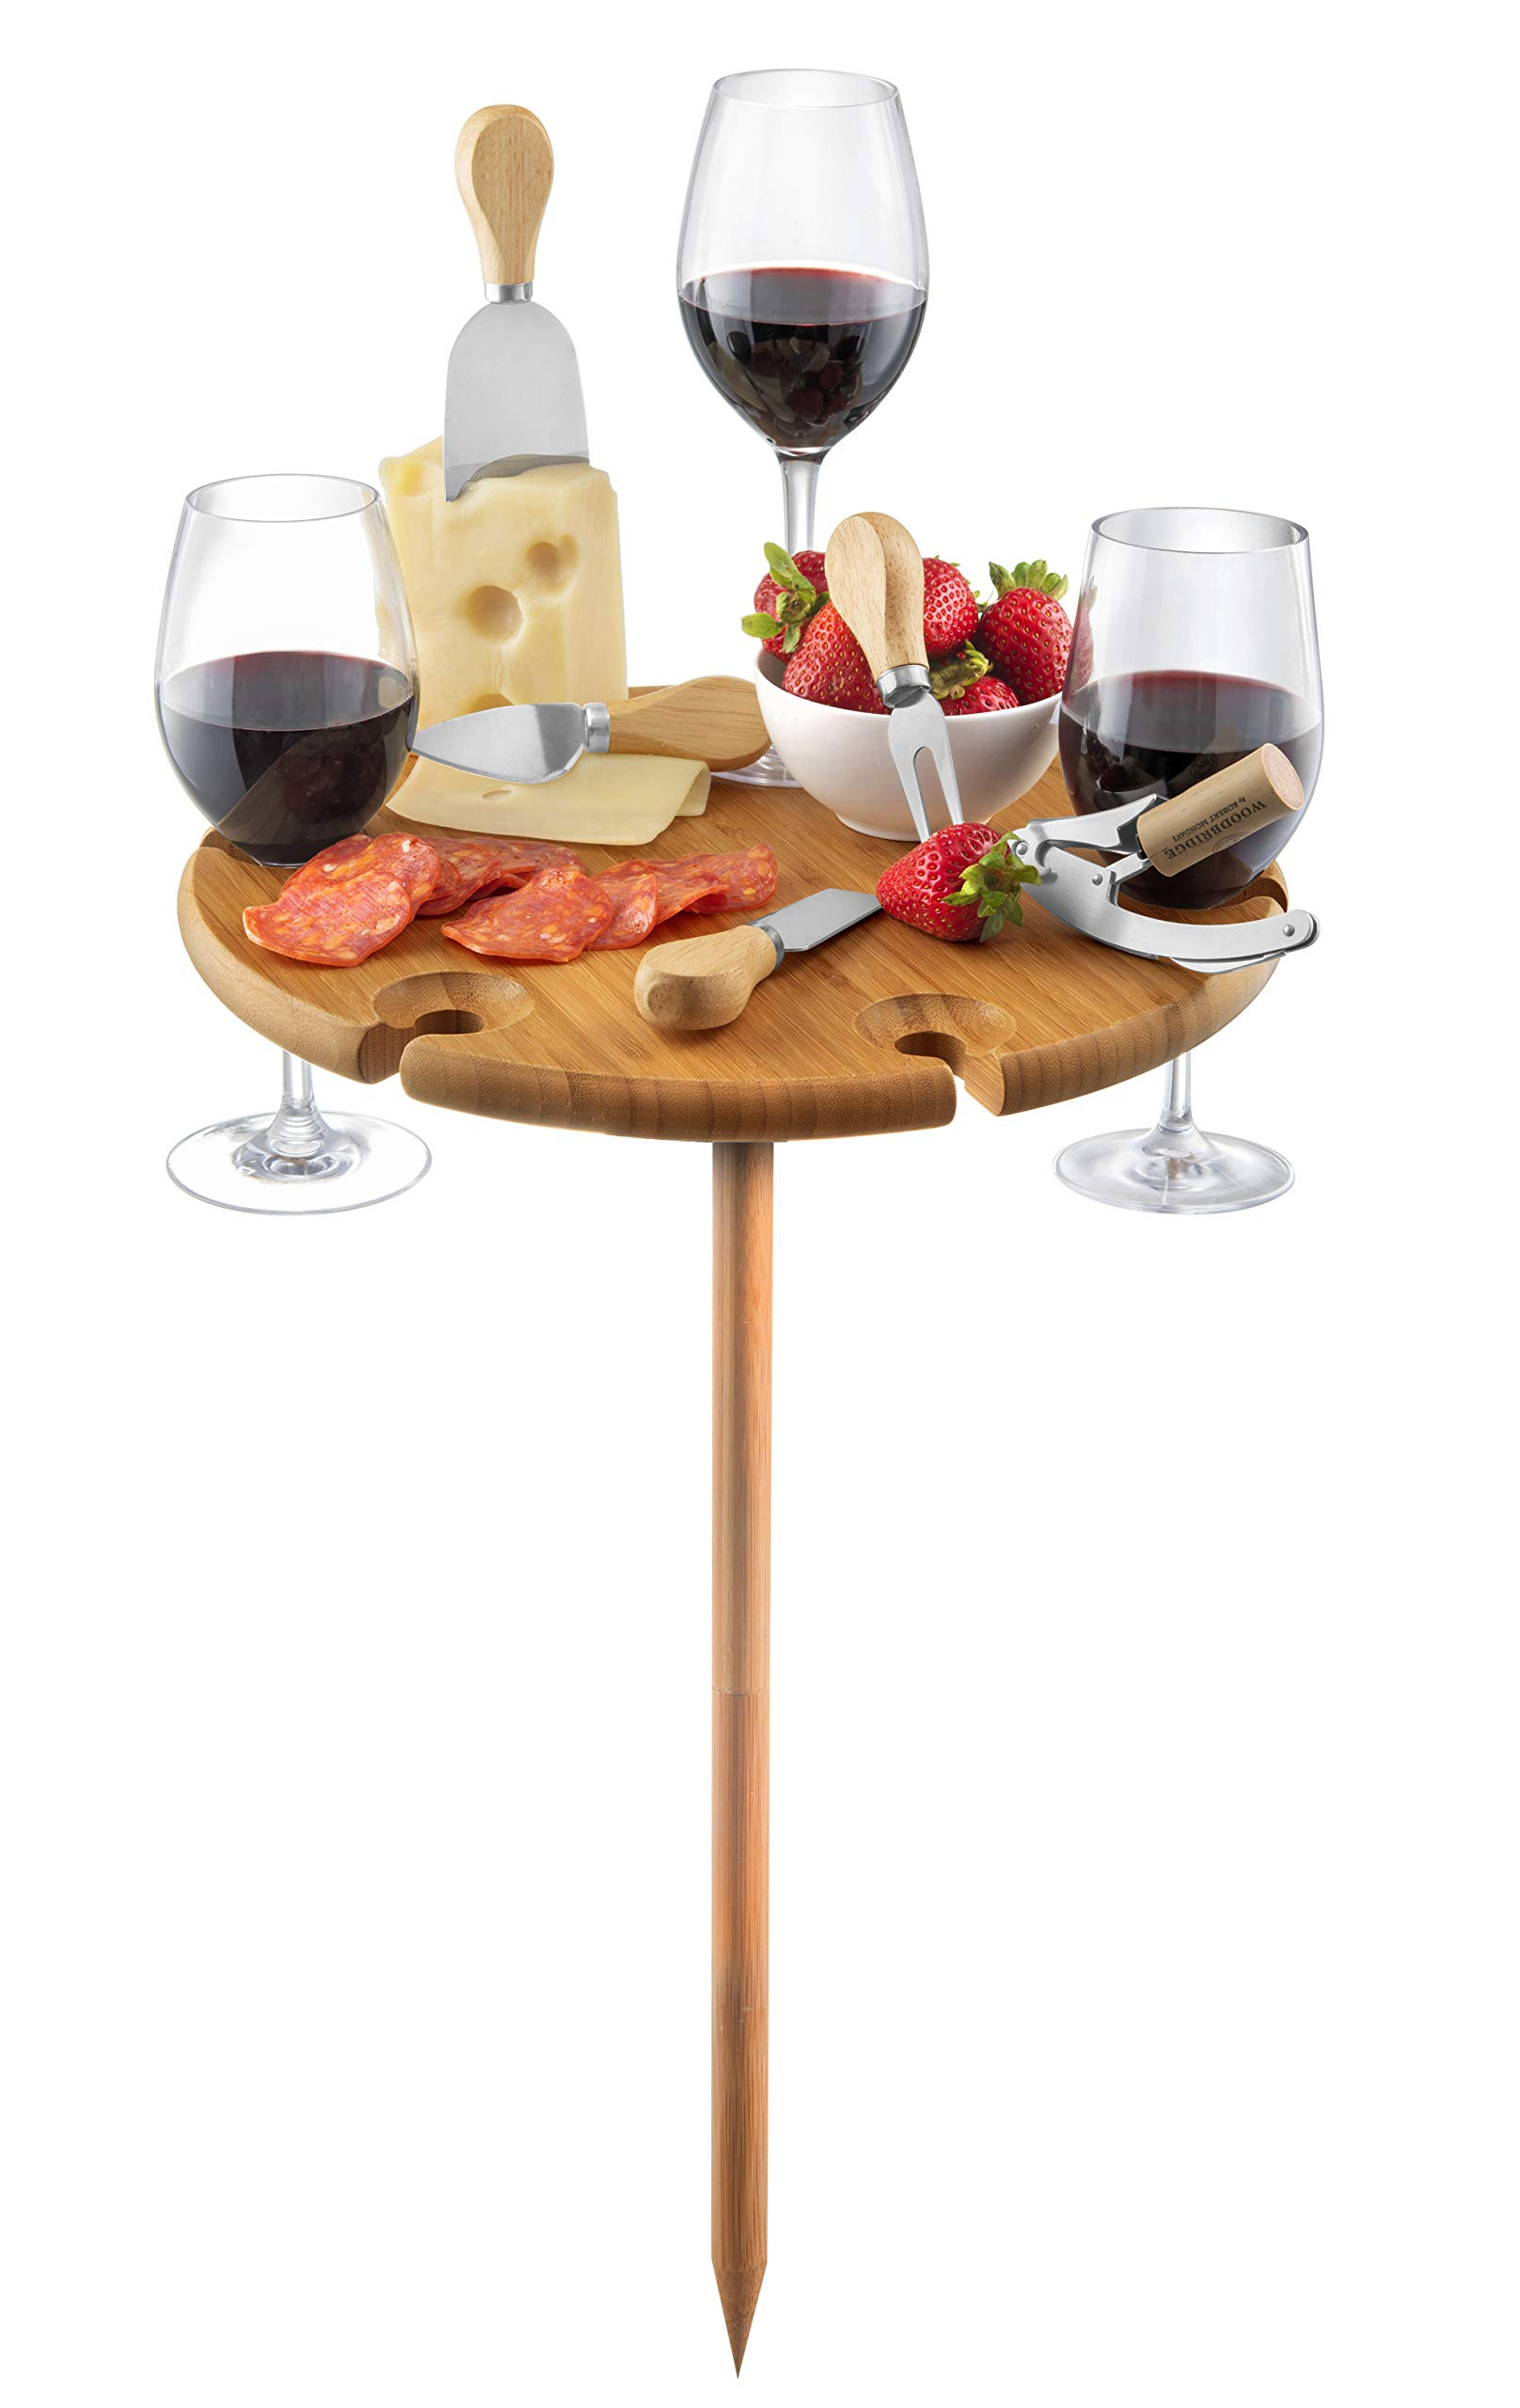 Bamboo Outdoor Wine Table with Cutlery - Picnic Tray Beach Wood Table for Camping and Entertaining | Includes 4 Utensils, Cork Opener, Glass Holders for Cheese and Meat